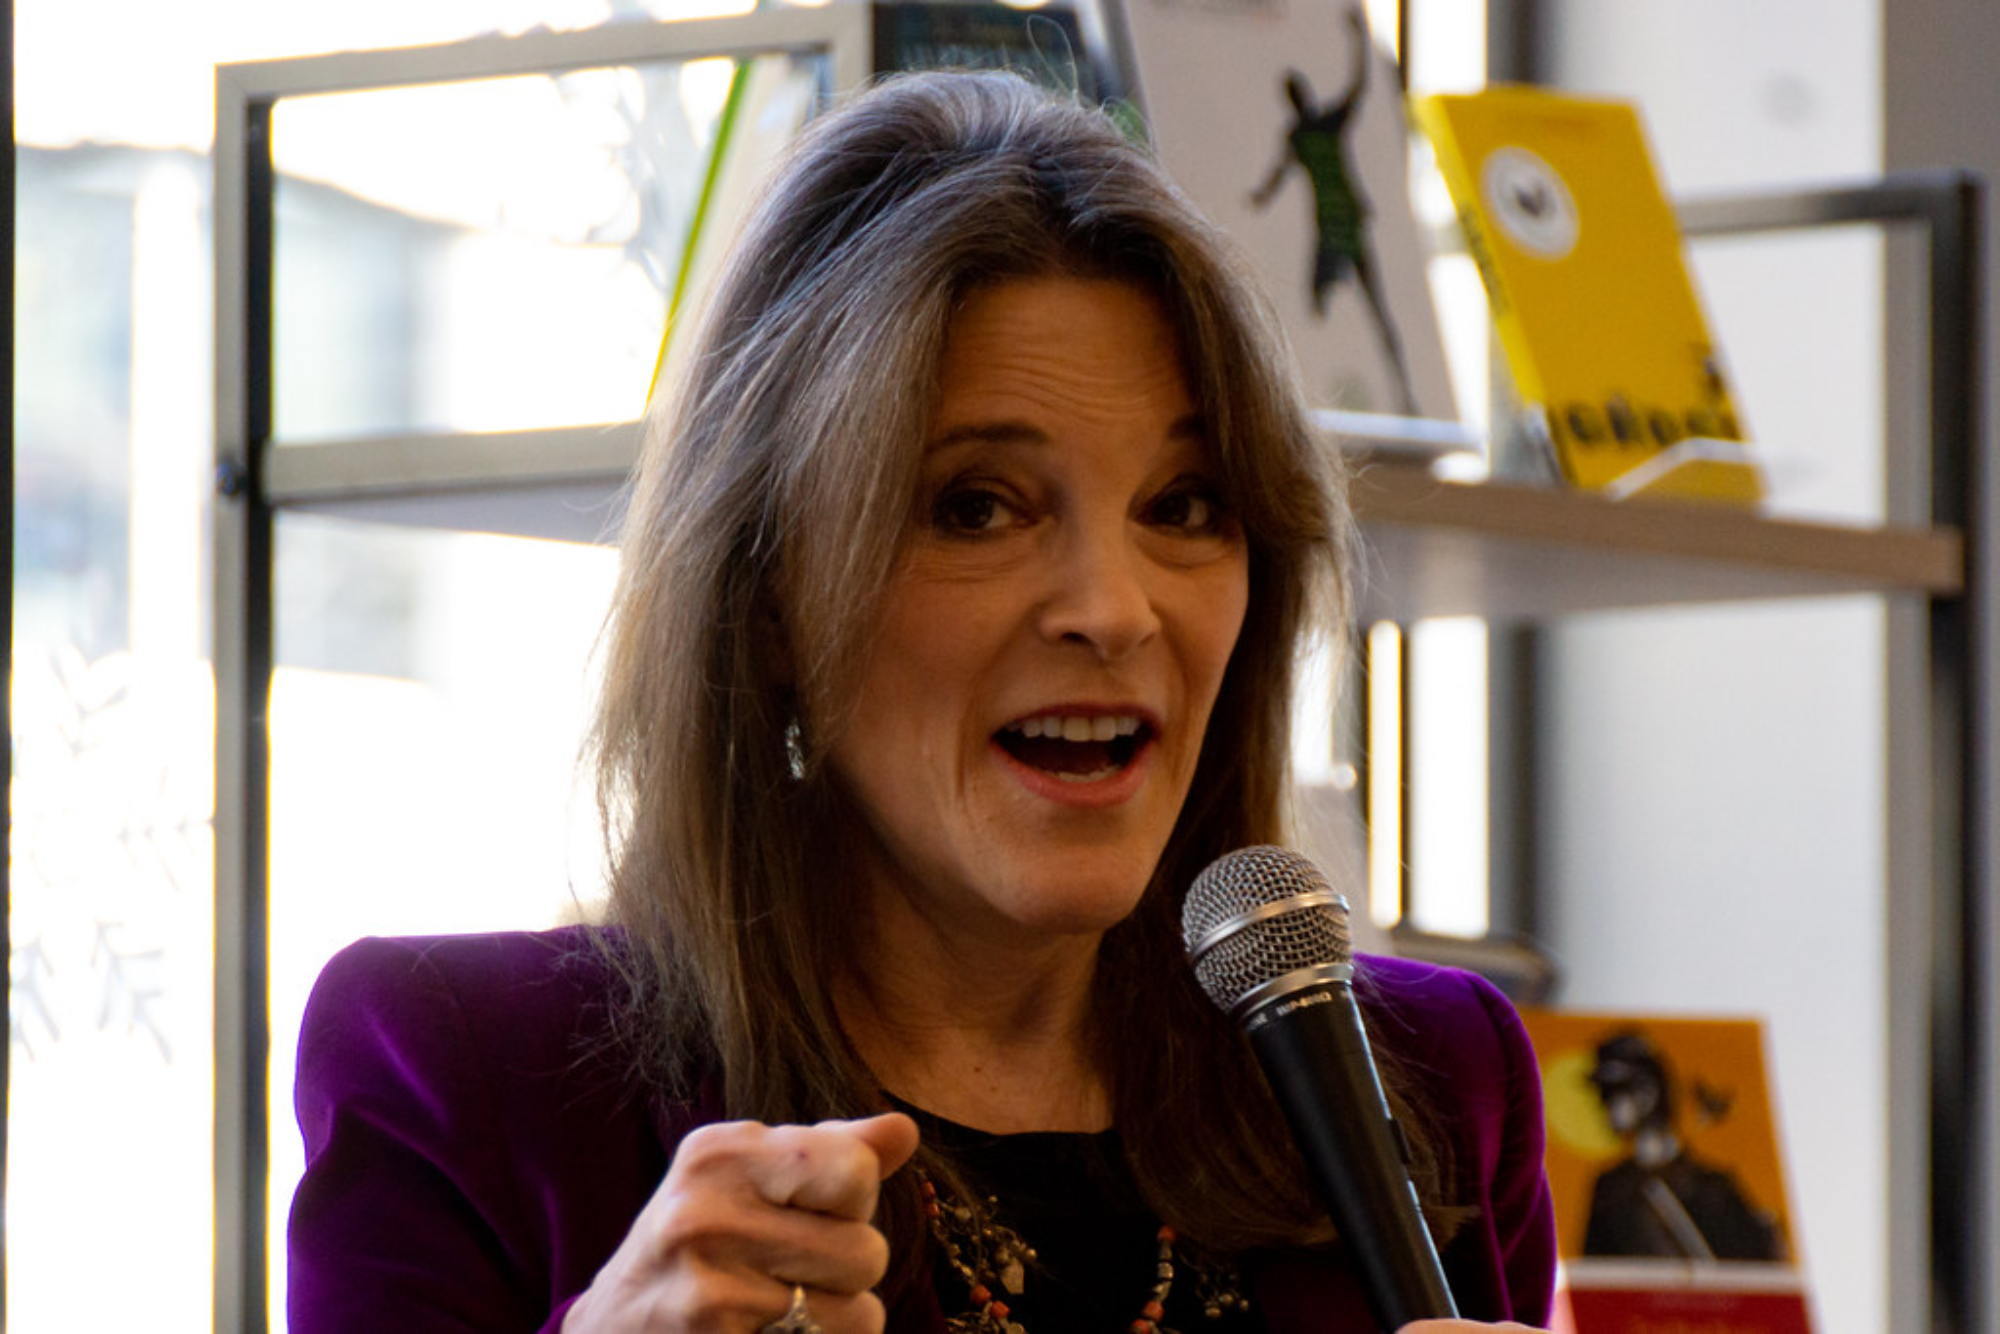 A photo of Marianne Williamson, a white woman, giving a speech in Manchester, NH. She stands at a mic and gestures toward the audience.